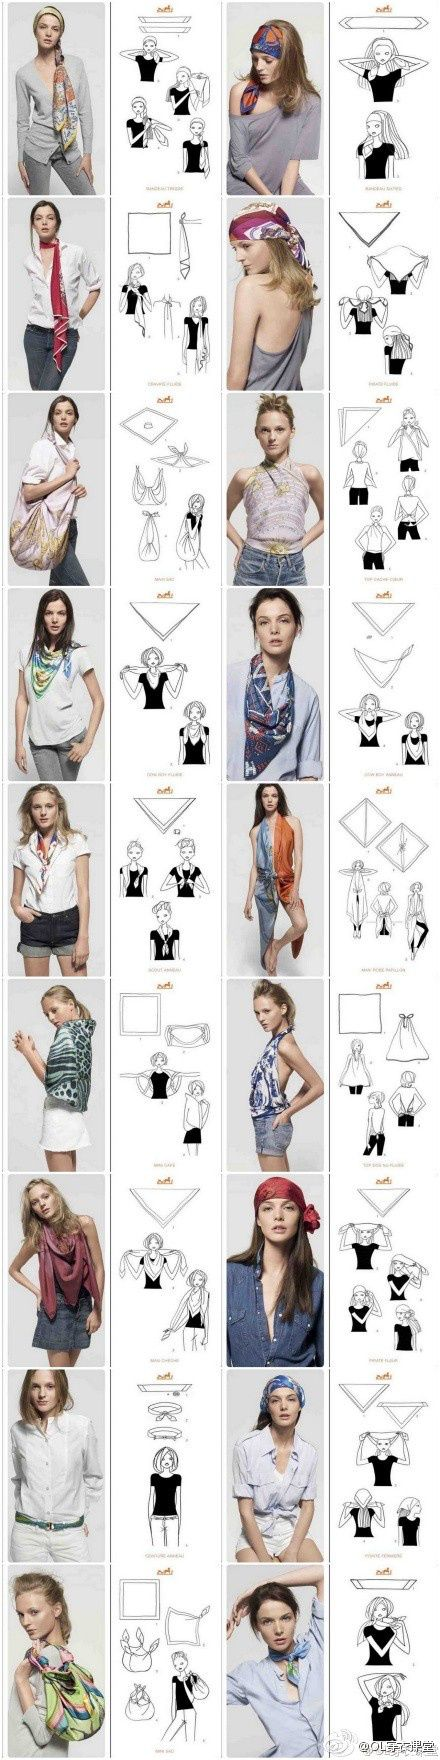 how to wear s scarf